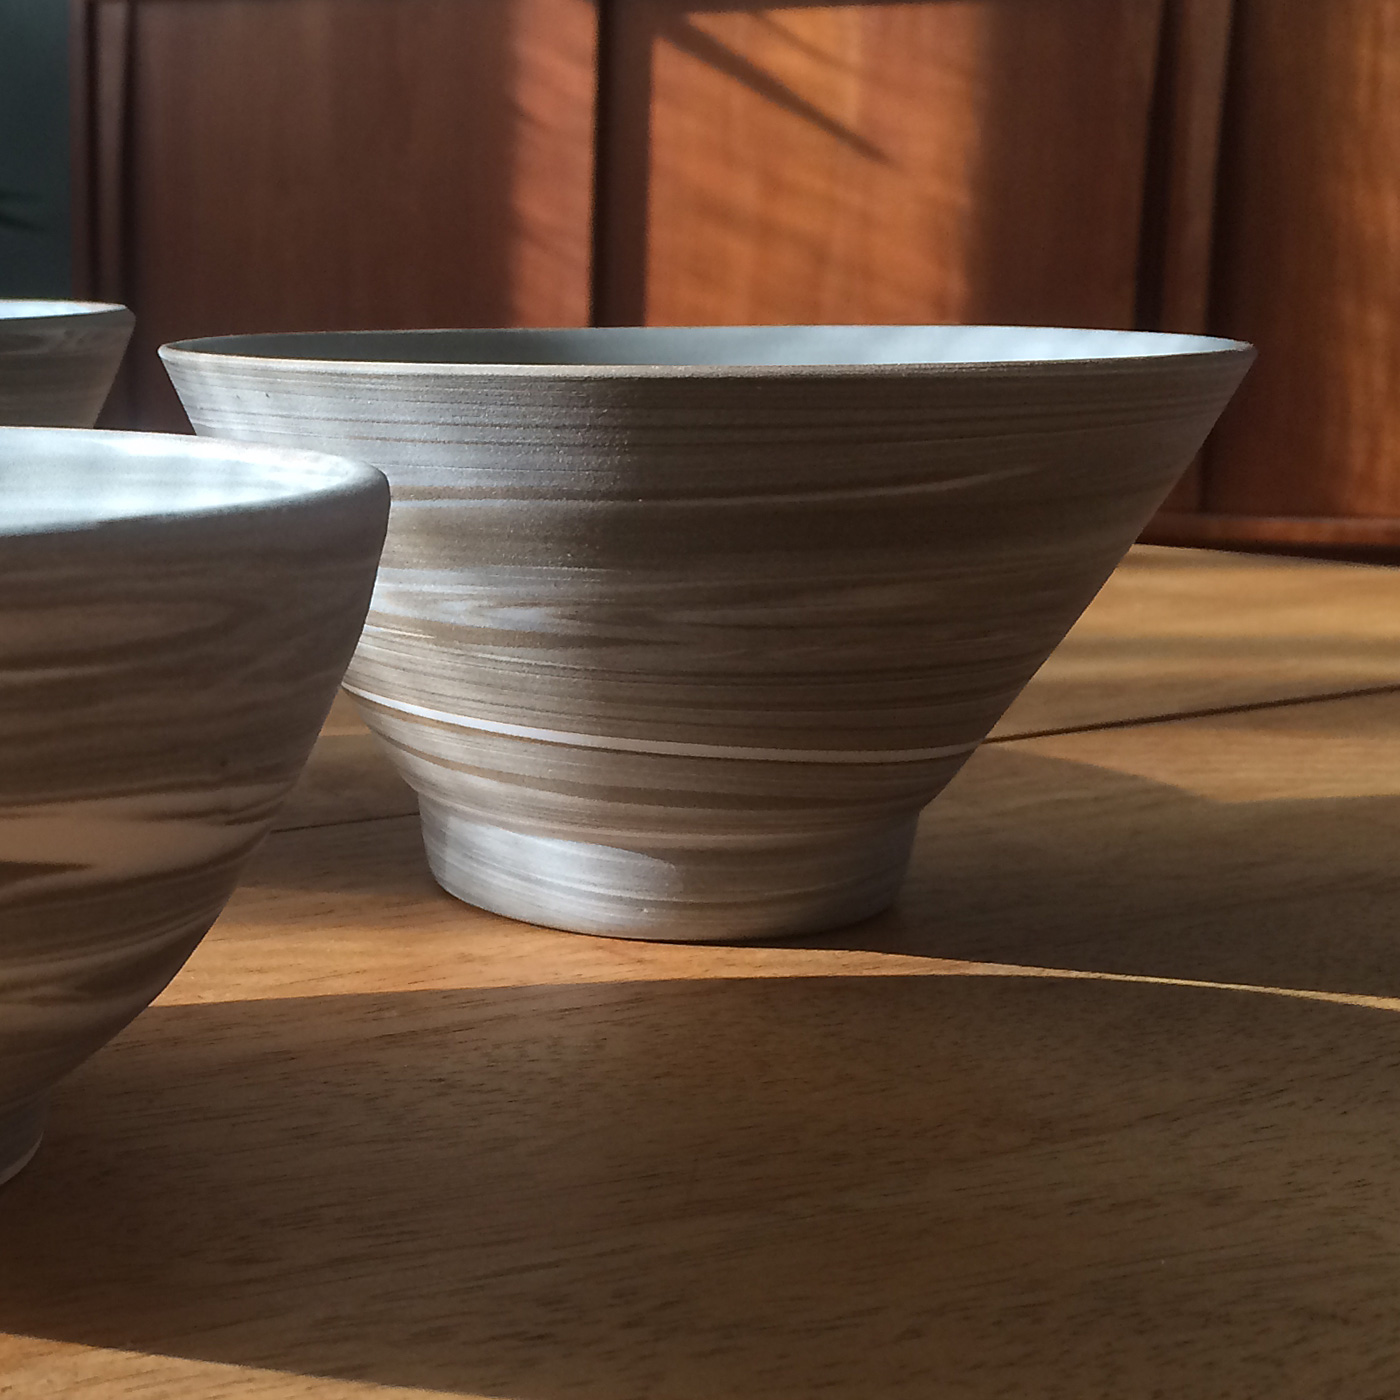 Marbled clay bowls, by La Datcha